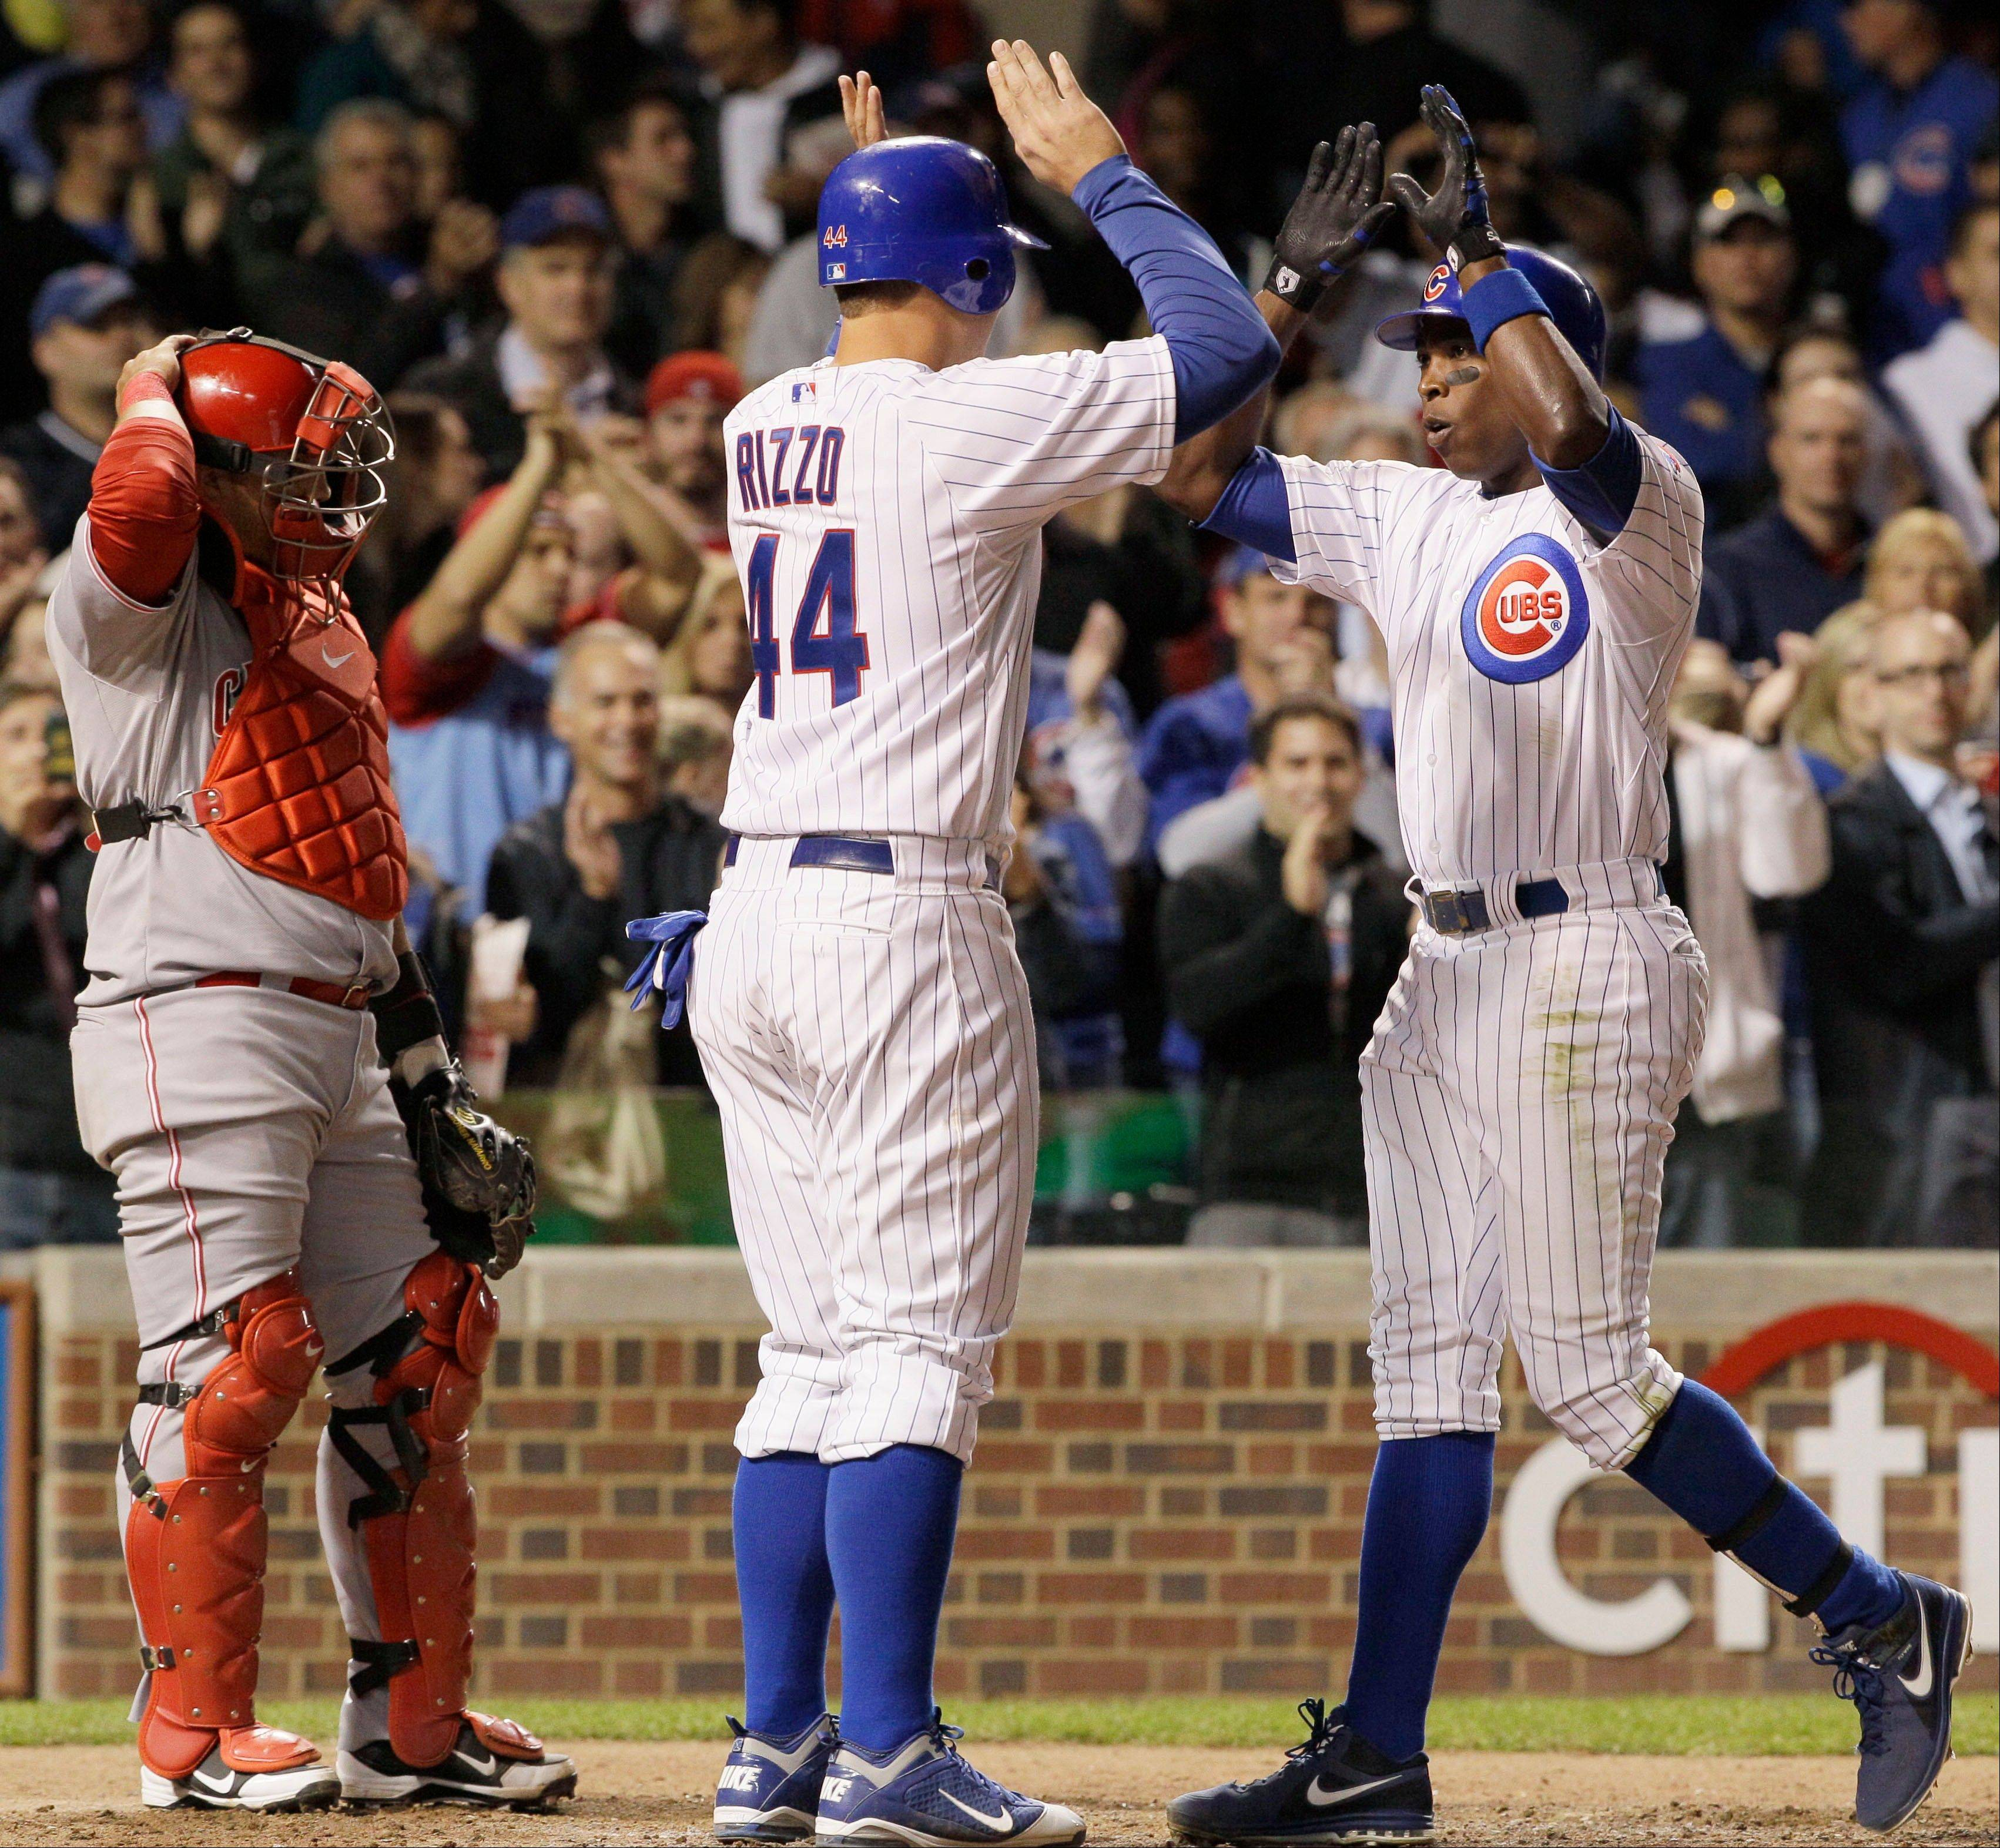 Alfonso Soriano, right, has a chance to win the RBI title as the Cubs enter the final days of the regular season. Soriano and Darwin Barney are also contenders for Gold Glove awards.